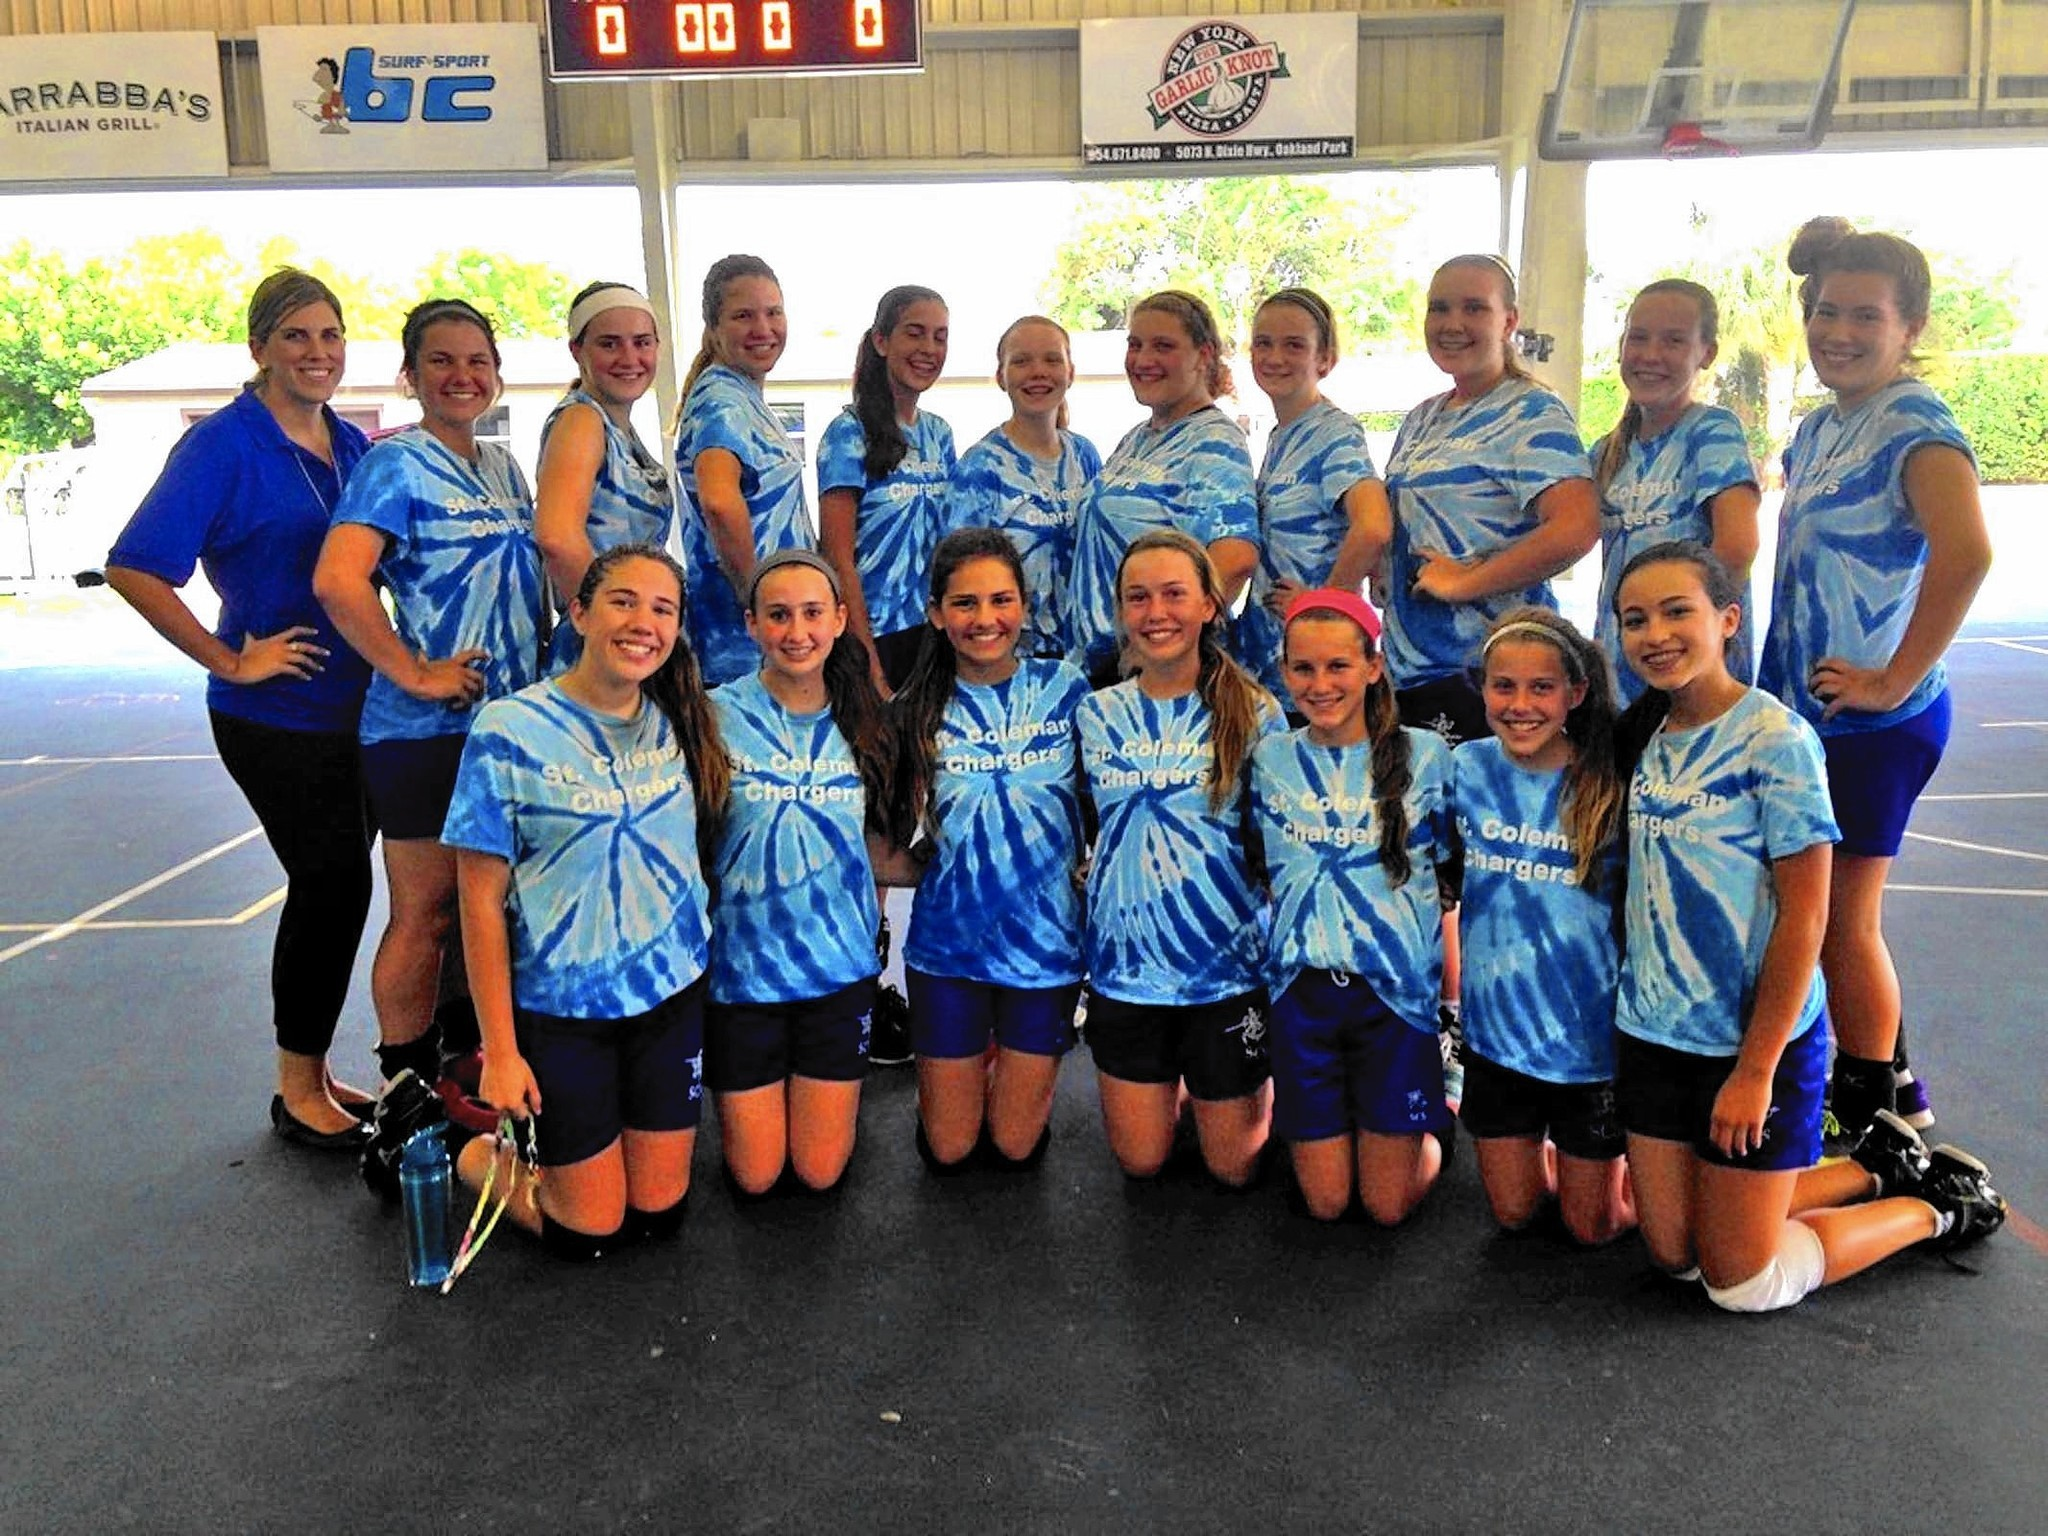 St Coleman Chargers At Full Power In Volleyball Finals